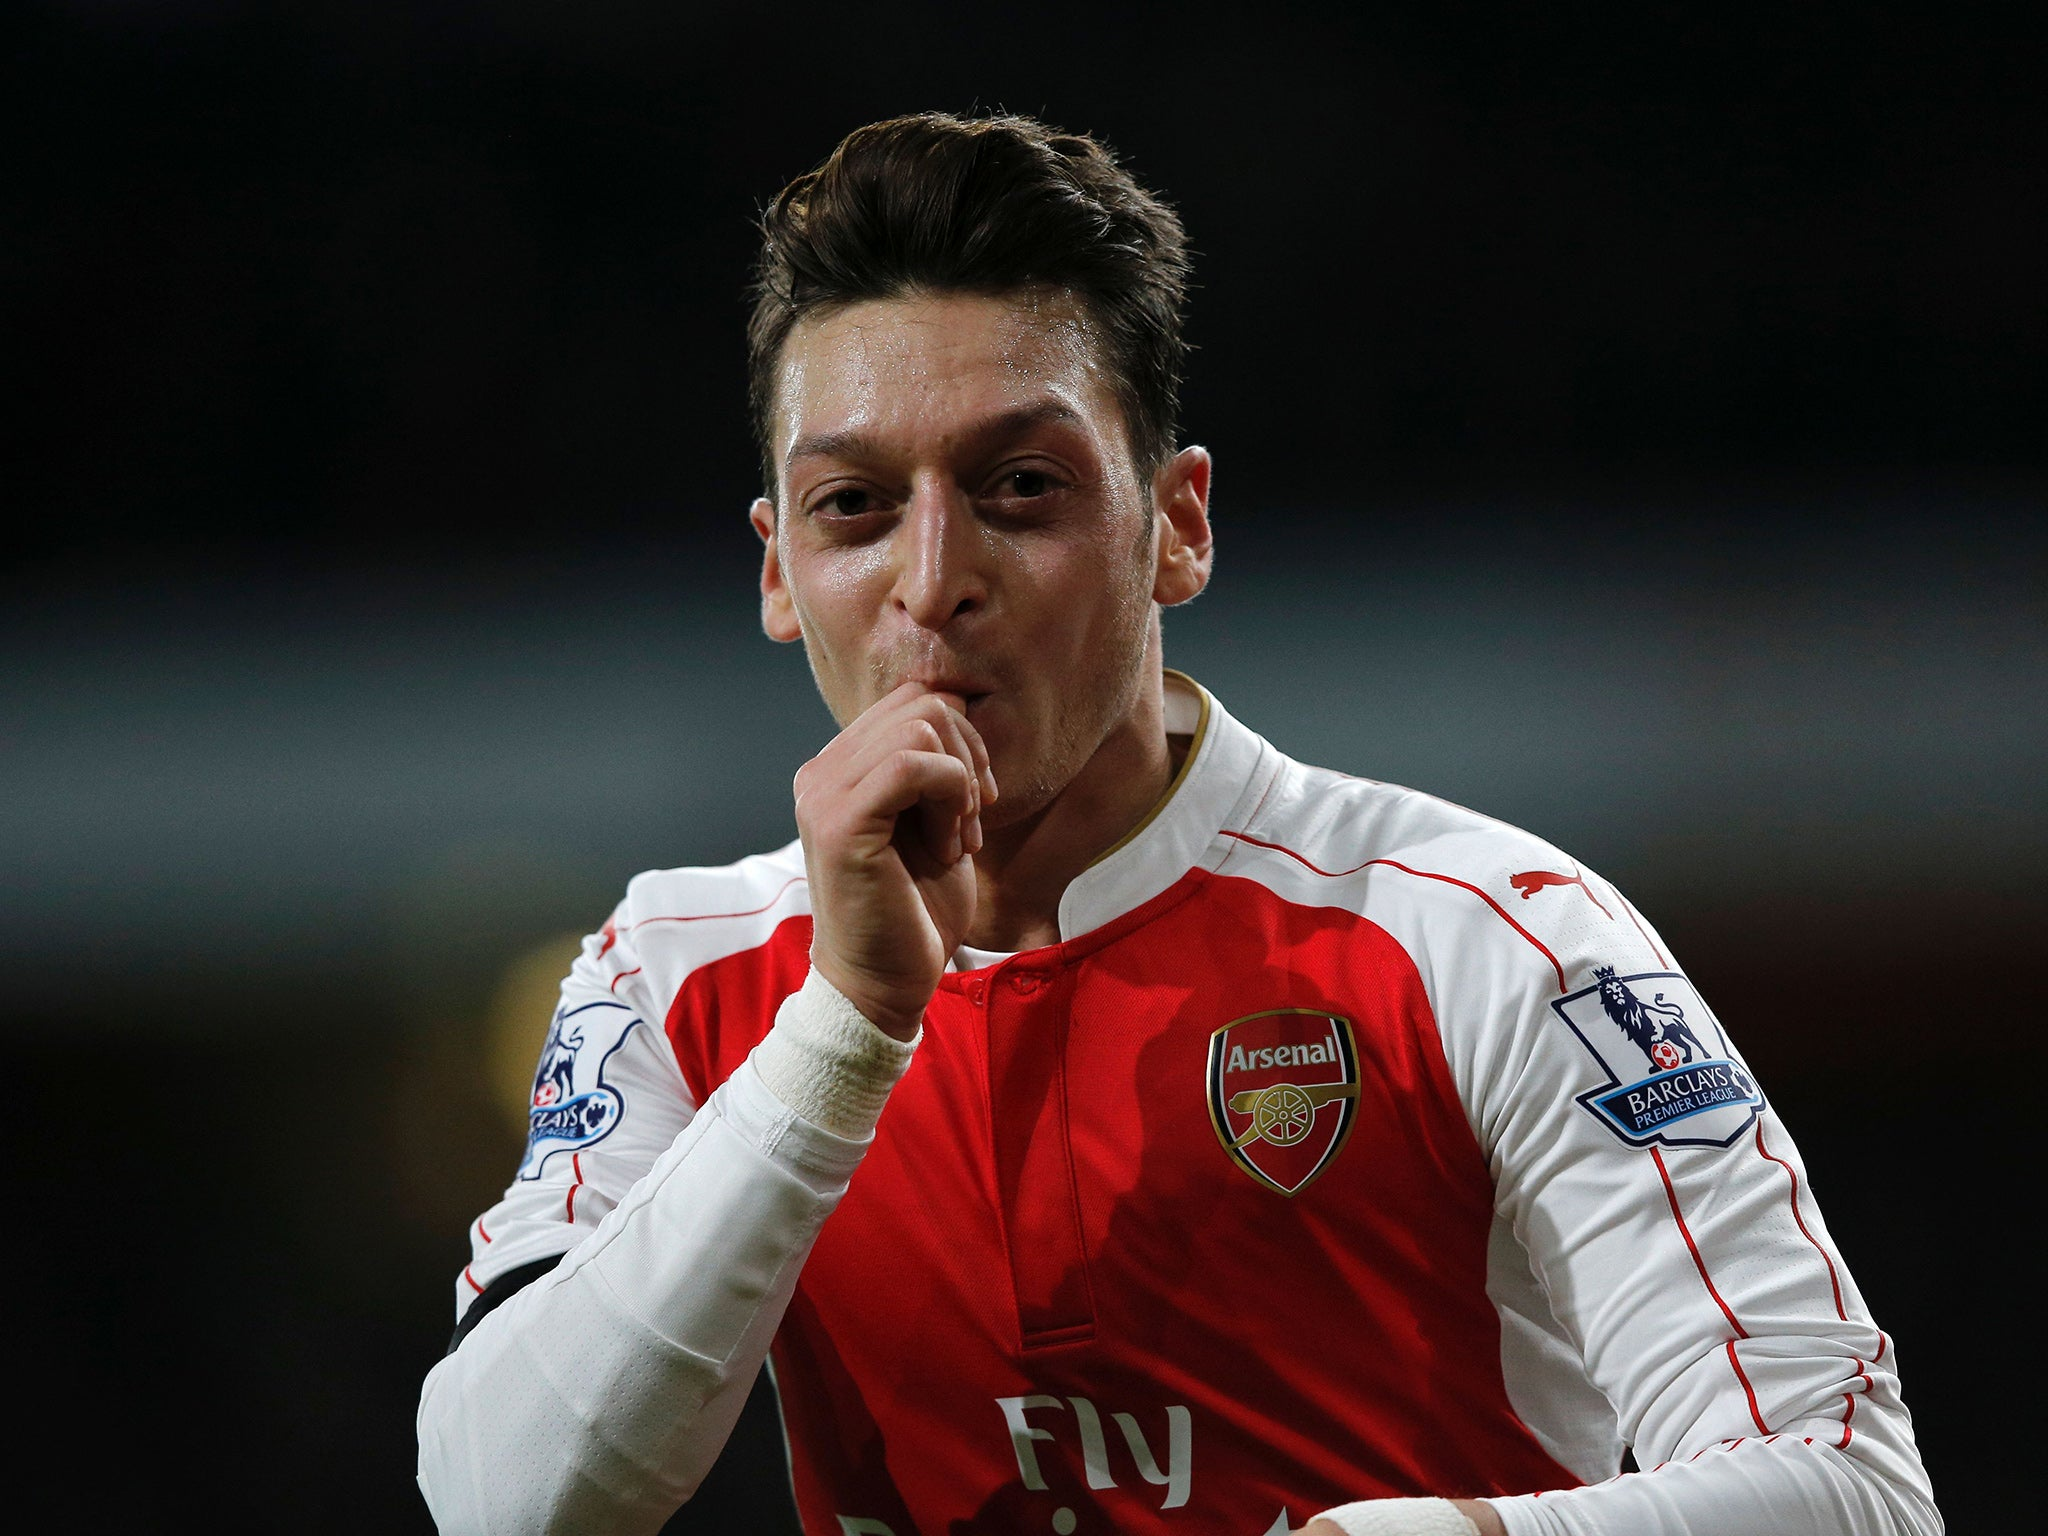 Mesut Ozil makes his 100th appearance for Arsenal in Chelsea clash